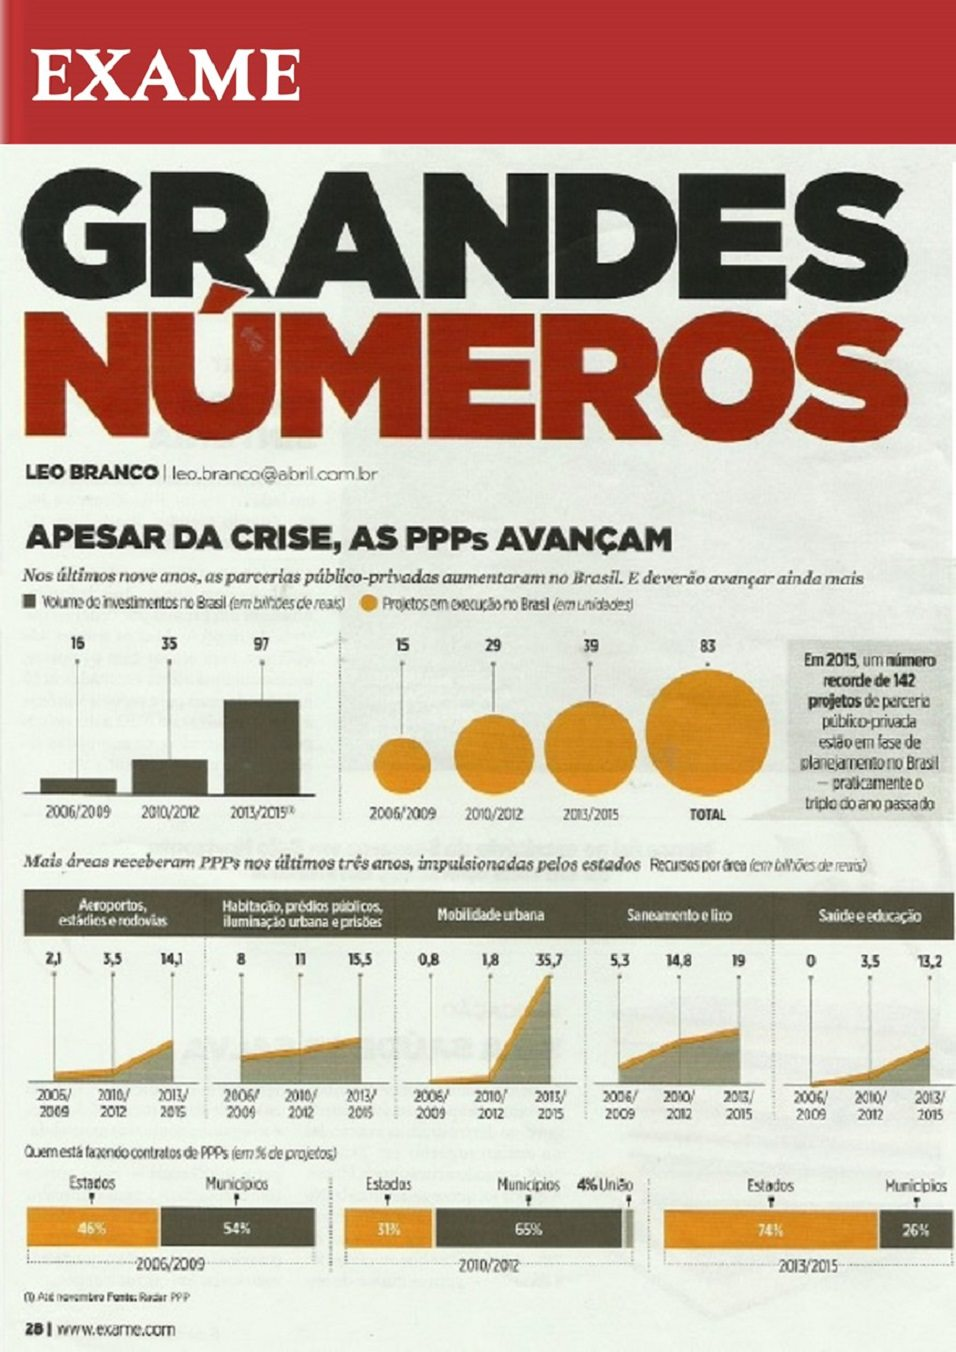 Exame ppp